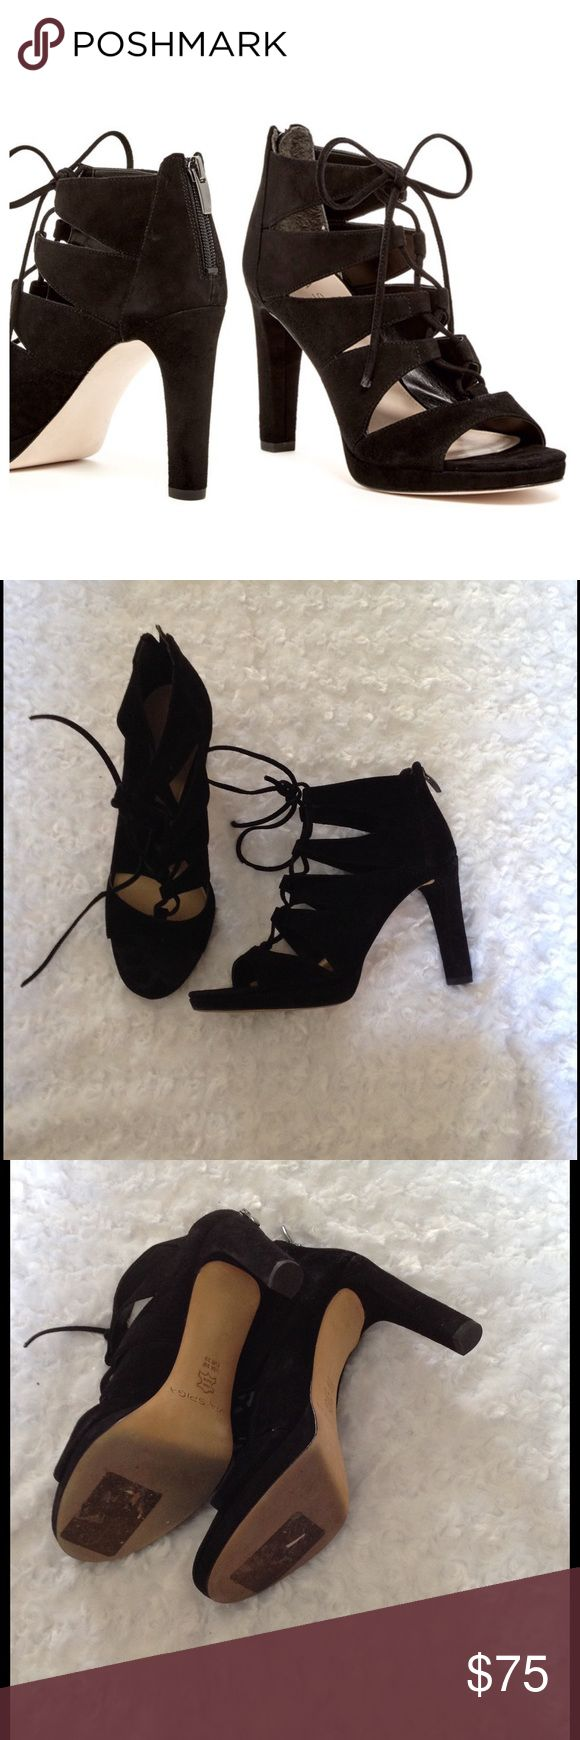 "Via Spiga Rajah Lace Up Black Suede Heels Via Spiga Rajah Lace Up Black Suede Heels. Back Zipper Closures. Worn for about 4 hours in Las Vegas. Purchased at Nordstrom Rack. 4"" heel. Original Box Included! I am normally a 8.5 / 9 and these fit perfect. Via Spiga Shoes Heels"